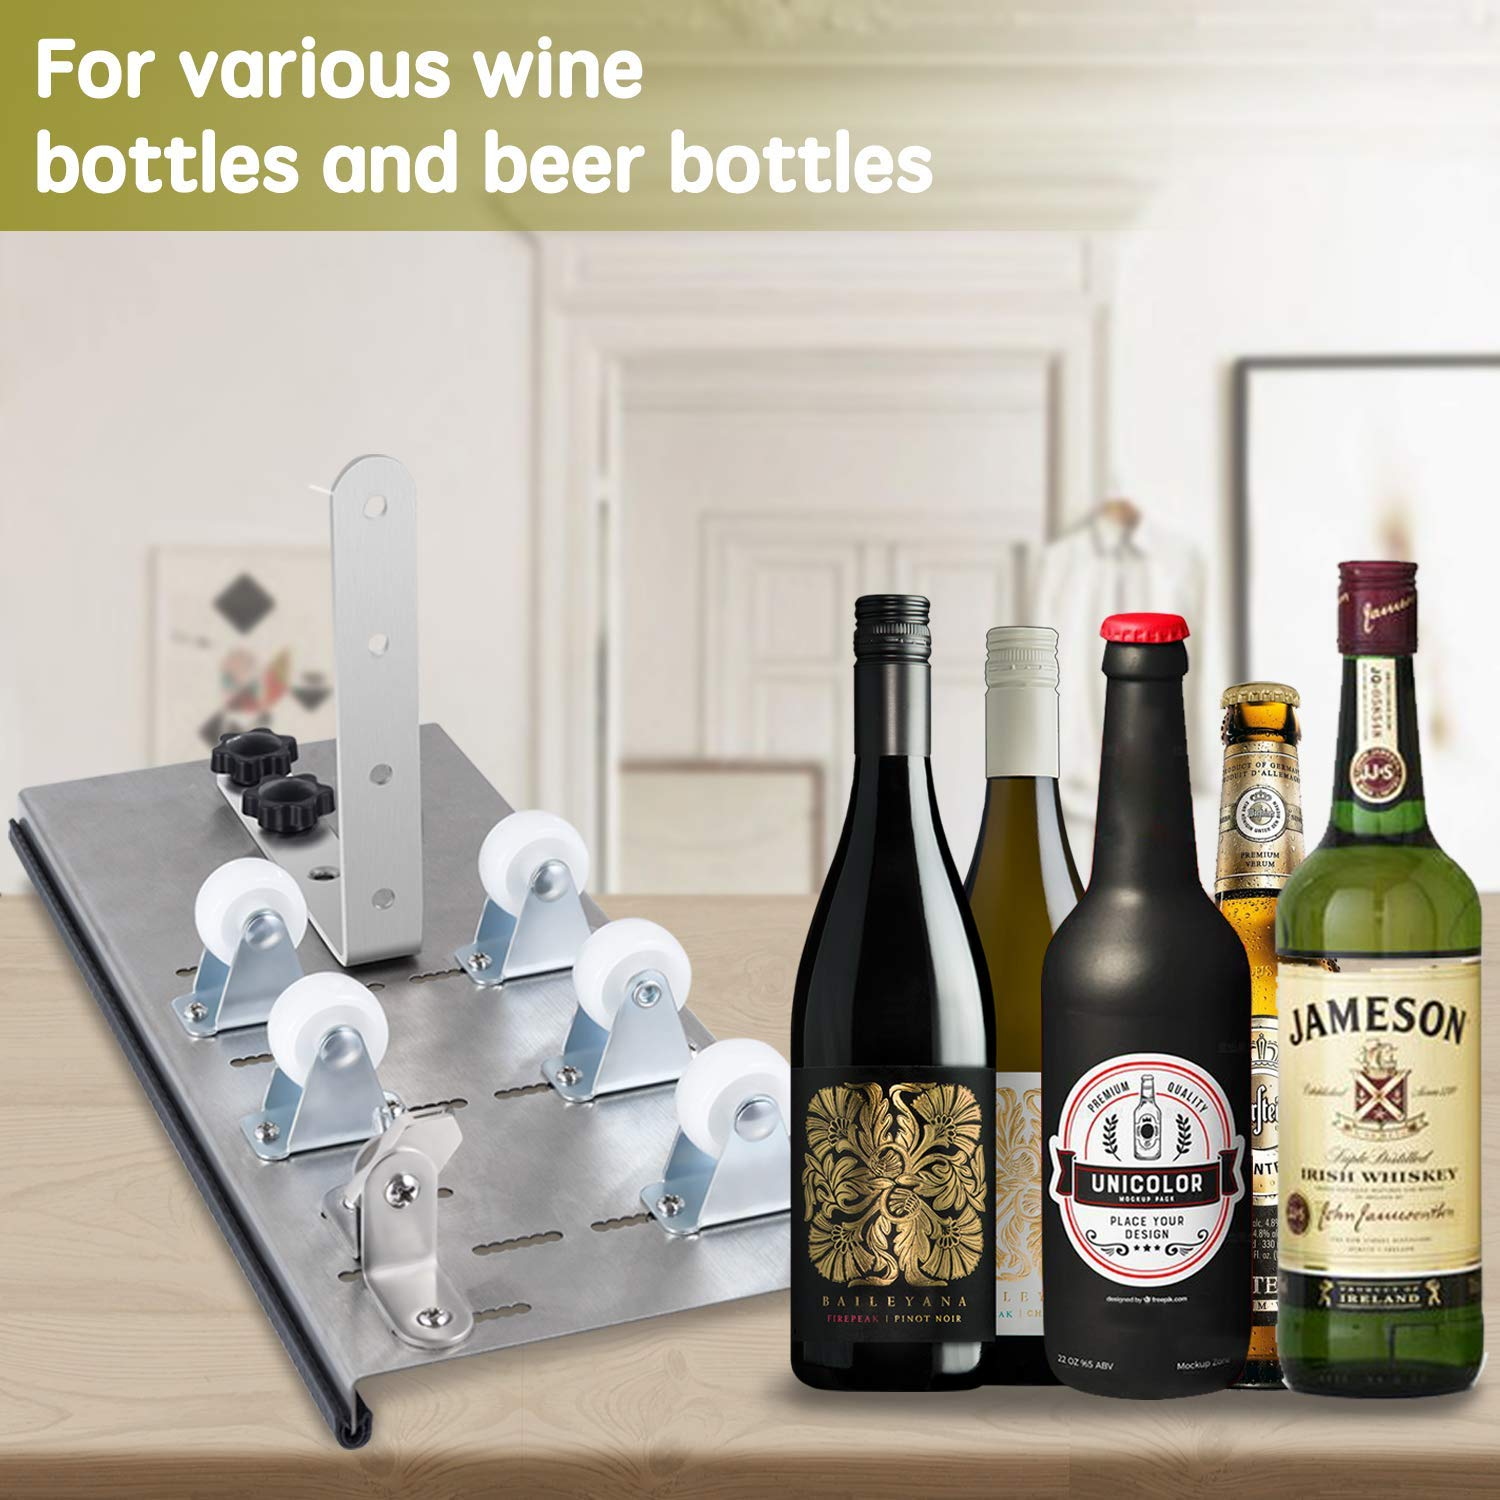 Kalawen Glass Bottle Cutter Bottle Cutter Latest Version DIY Machine for Cutting Wine Beer Whiskey Alcohol Champagne to Craft Glasses Accessories Tool Kit Gloves Fixing Rubber Ring by Kalawen (Image #3)